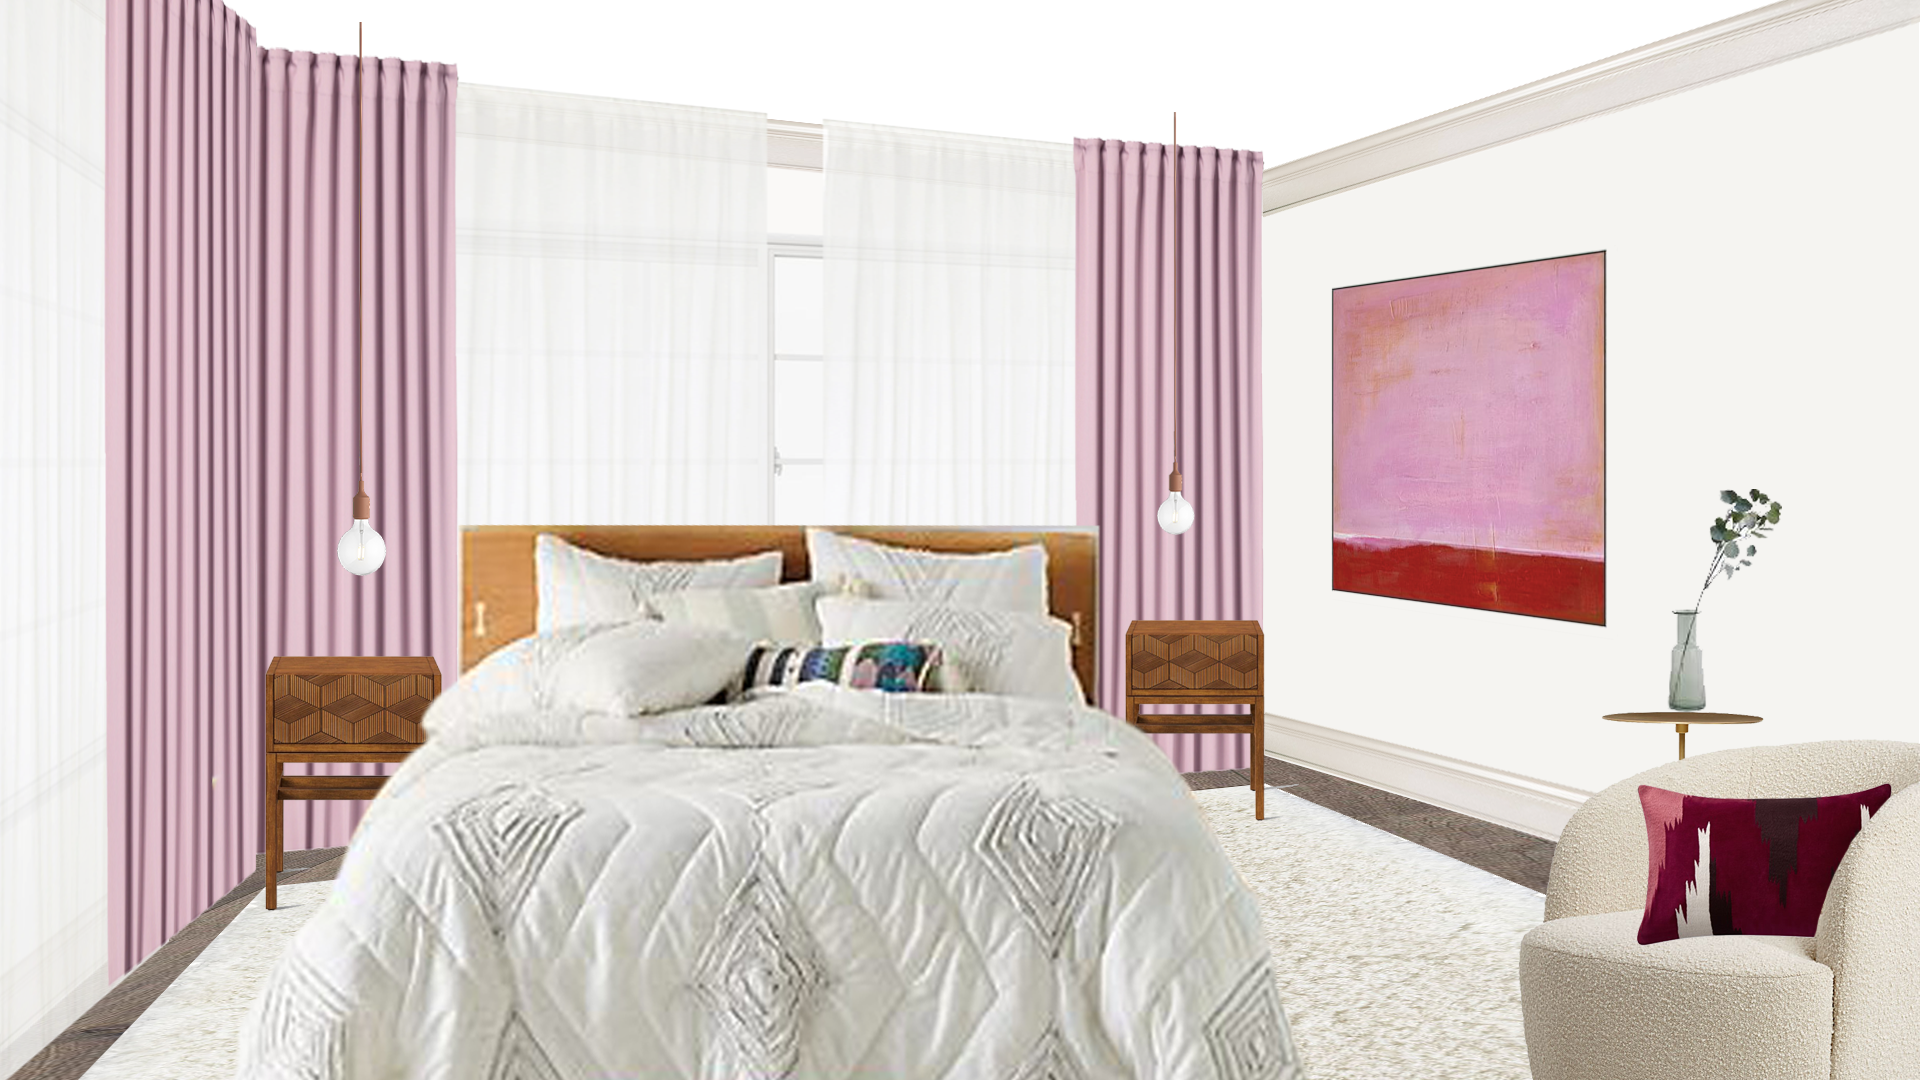 This bedroom was designed for a friend who wanted to see her love of soft rose colored lipstick applied into her room. She wanted soft textures, warm woods, and large velvet curtains to block out some of the noise and light that comes from the two large windows that sit on her main and adjacent wall. Though the room is small, the height of the curtains add volume and depth while the soft palette allows for a large open feel.